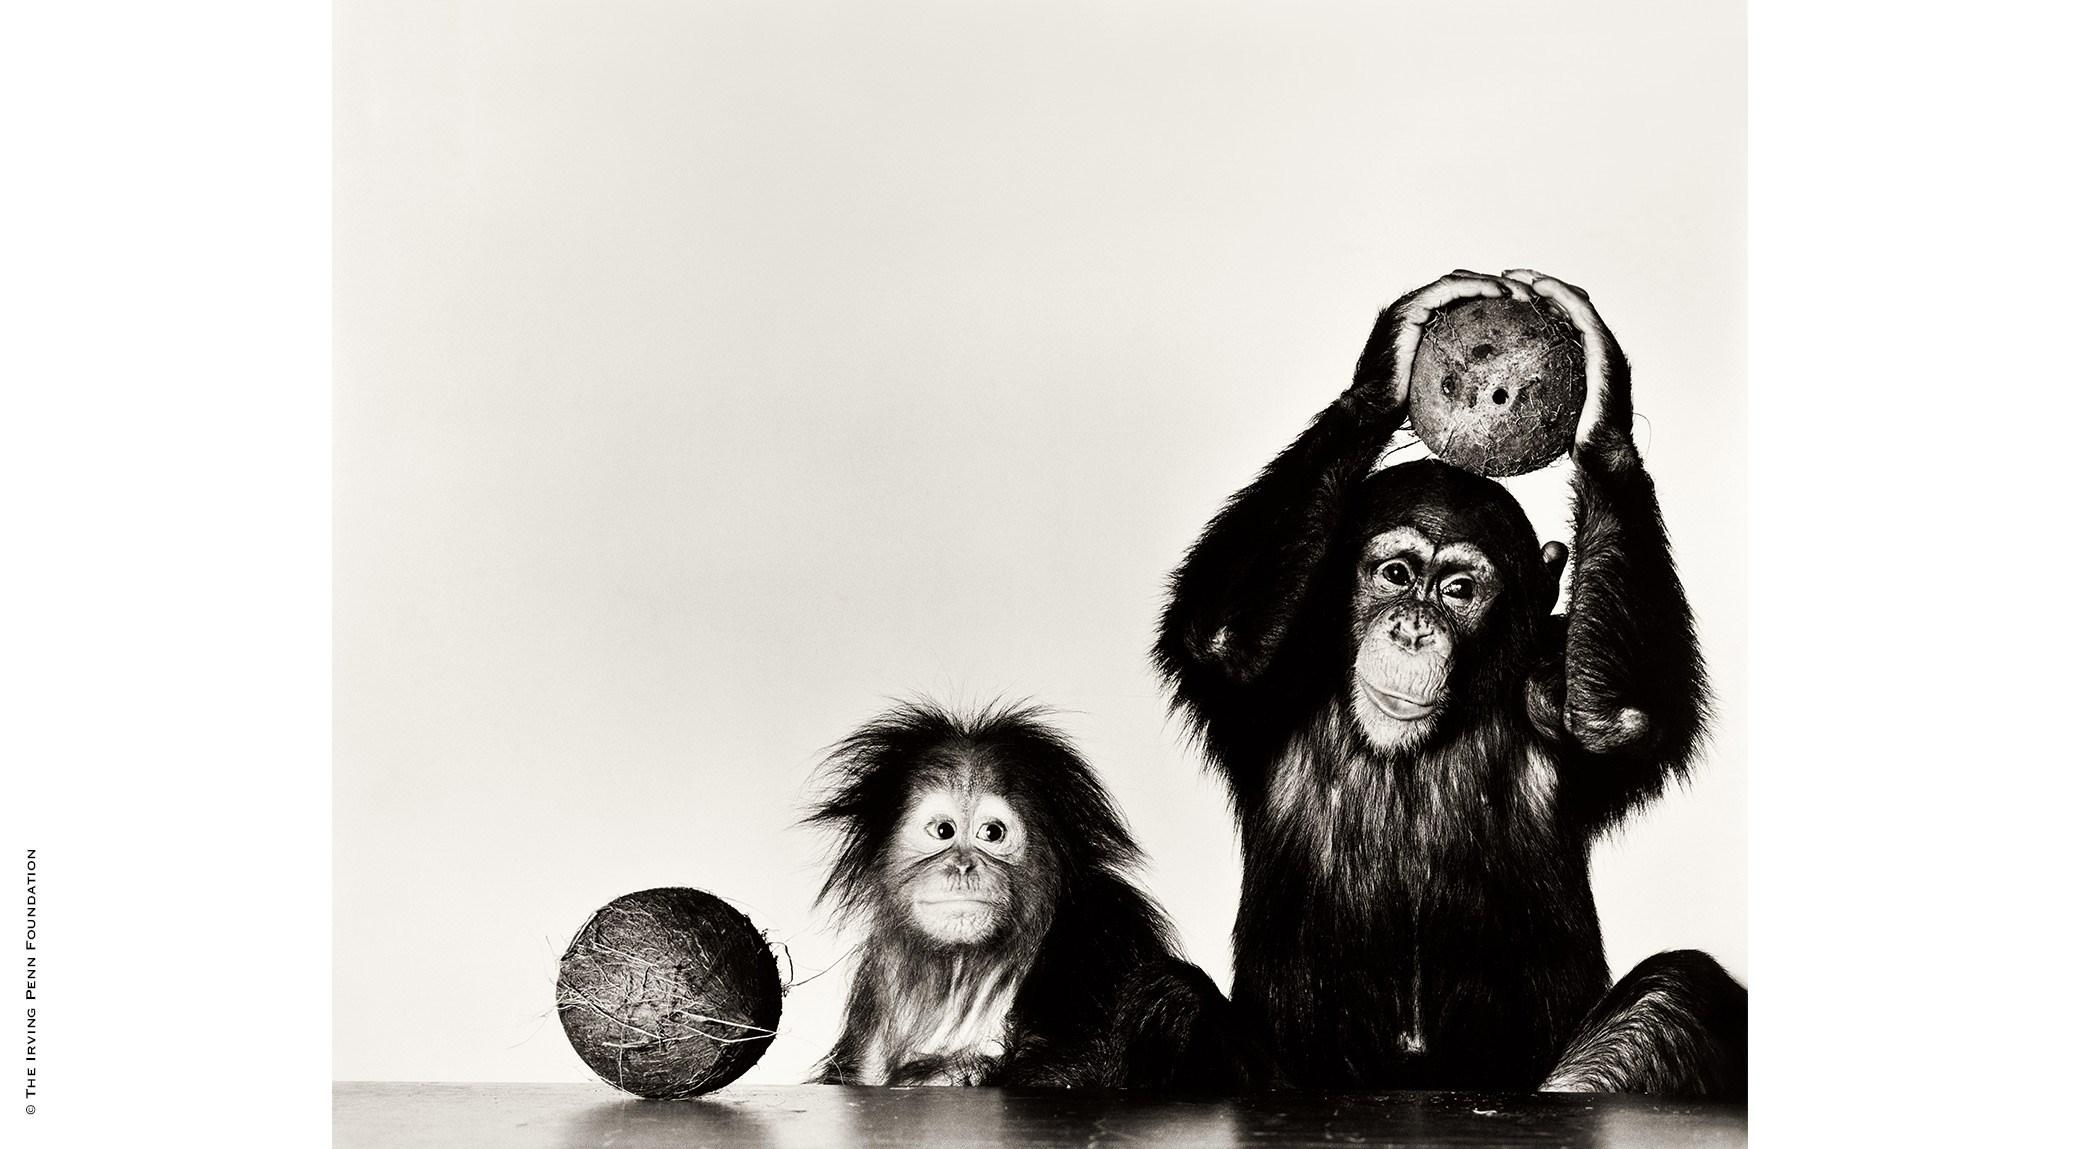 Irving Penn, Orangutan and Chimpanzee